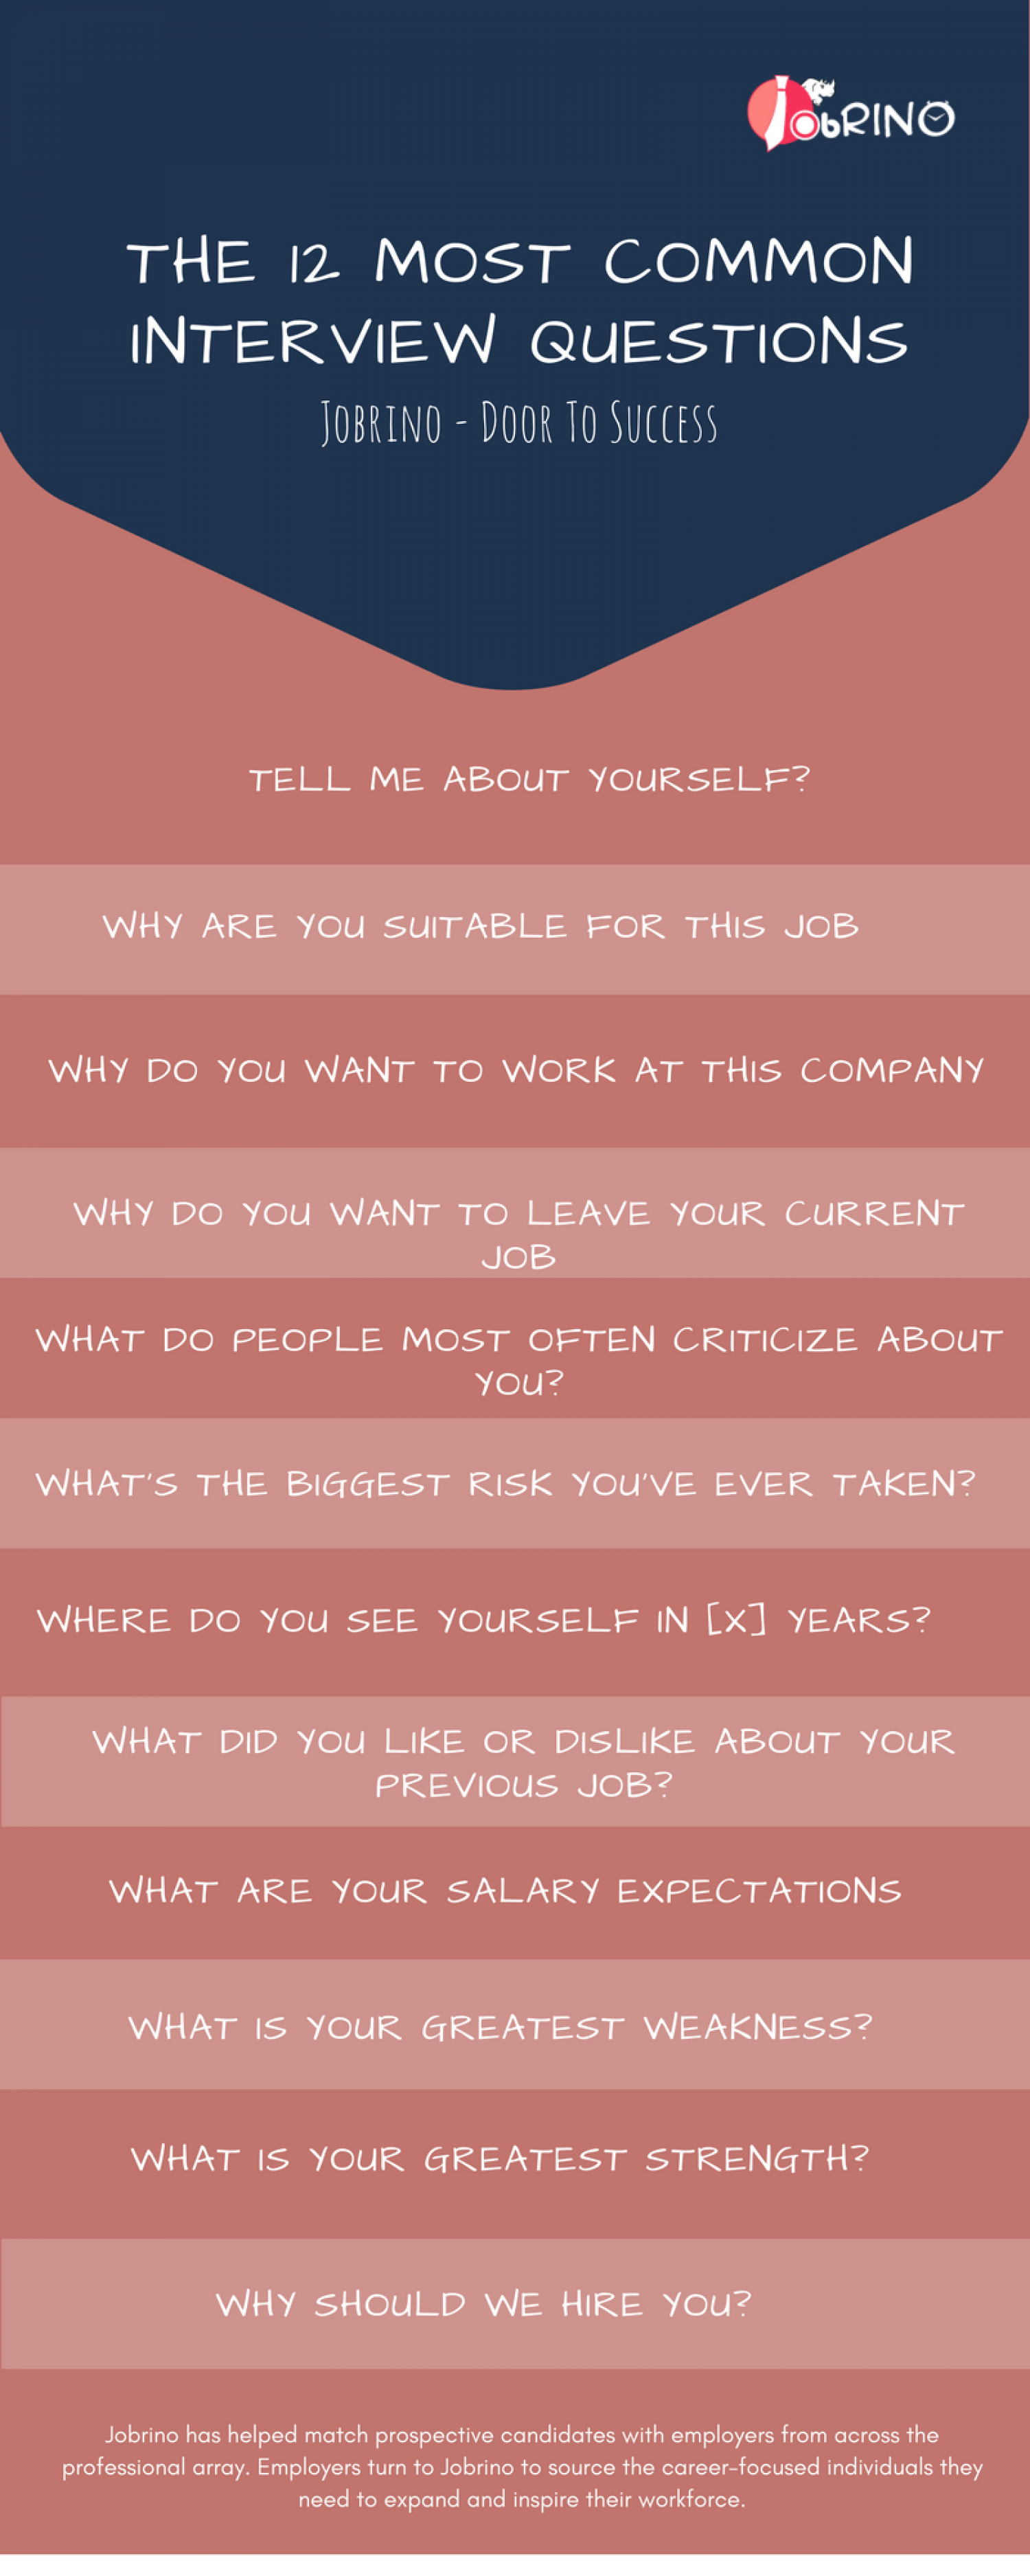 Find the 12 most common interview questions - JobRino Infographic